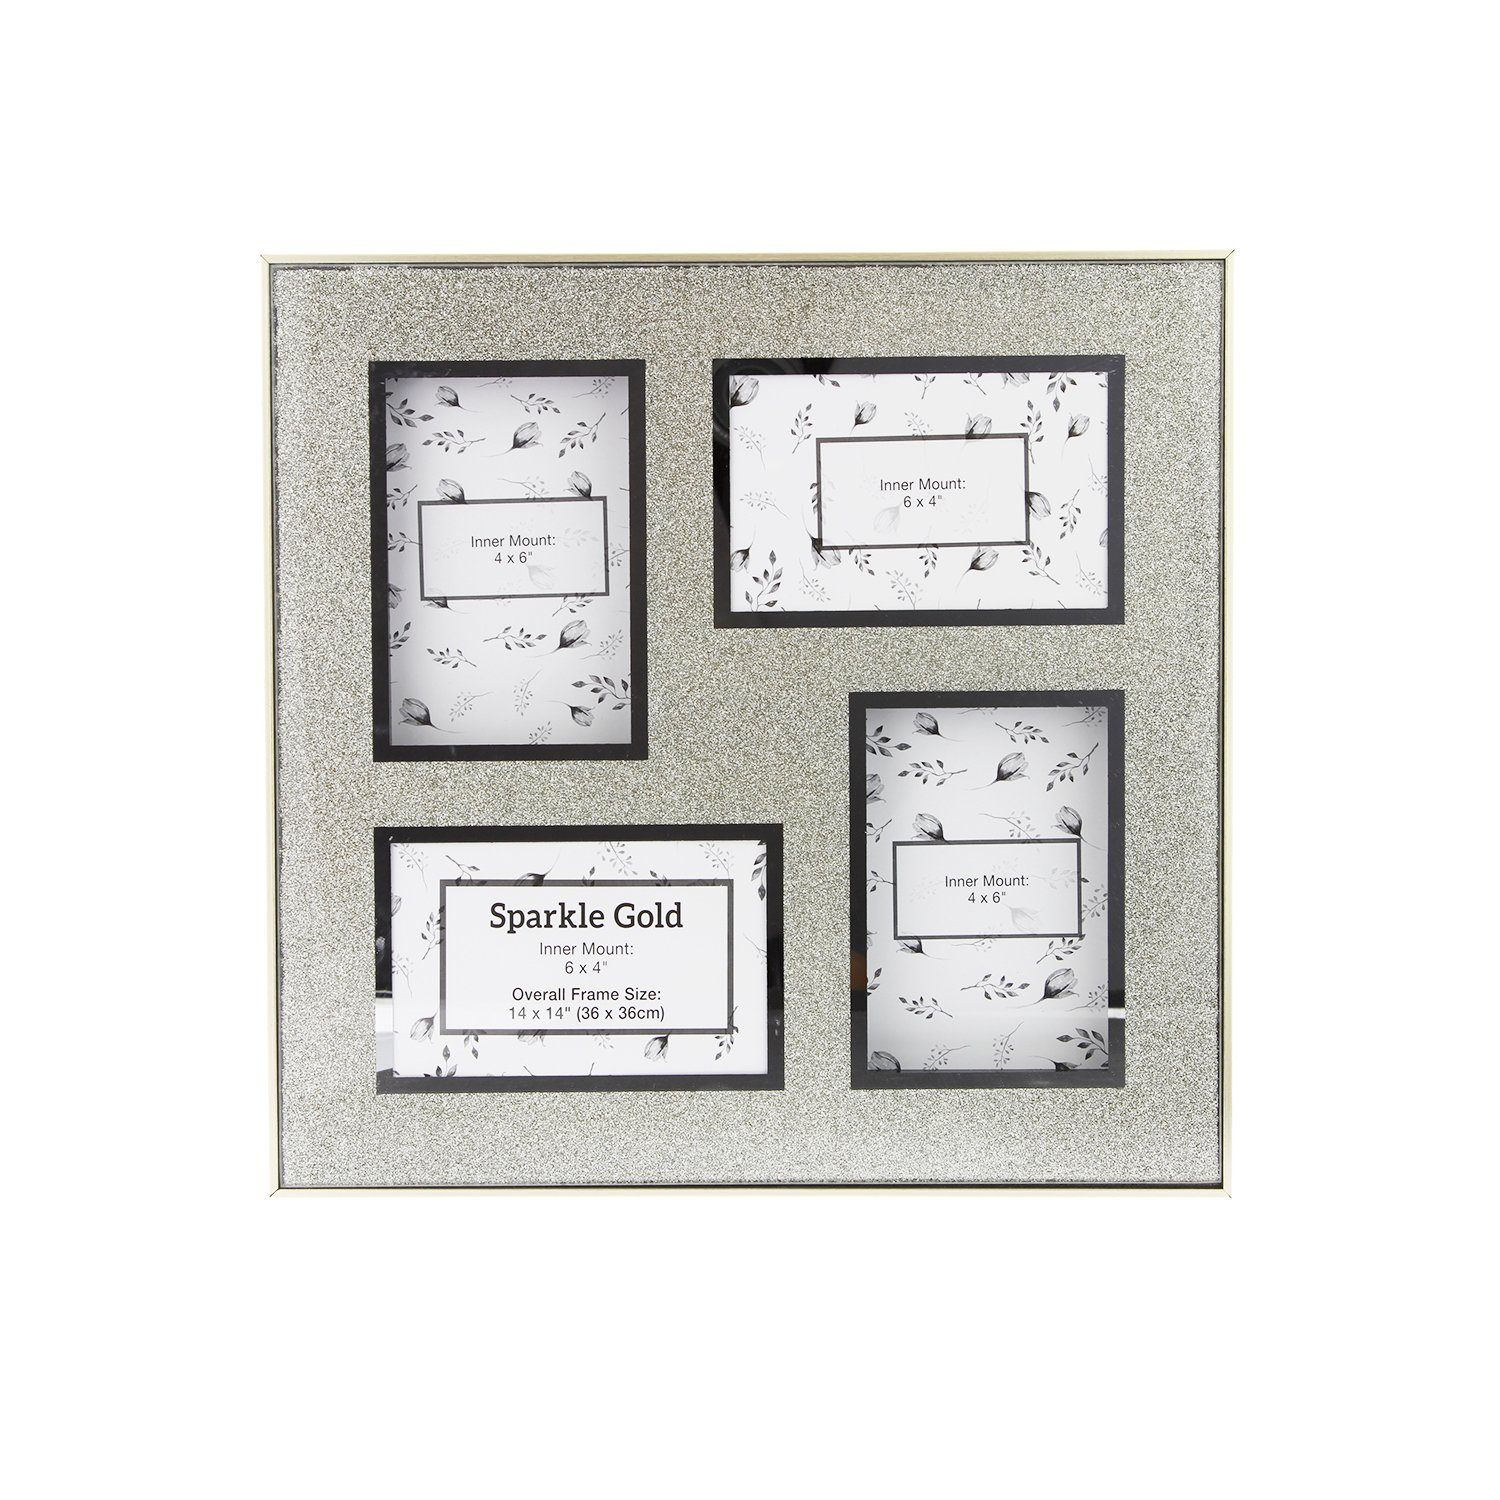 Multi Sparkle Gold Photo Frame 36x36 - Home Store + More